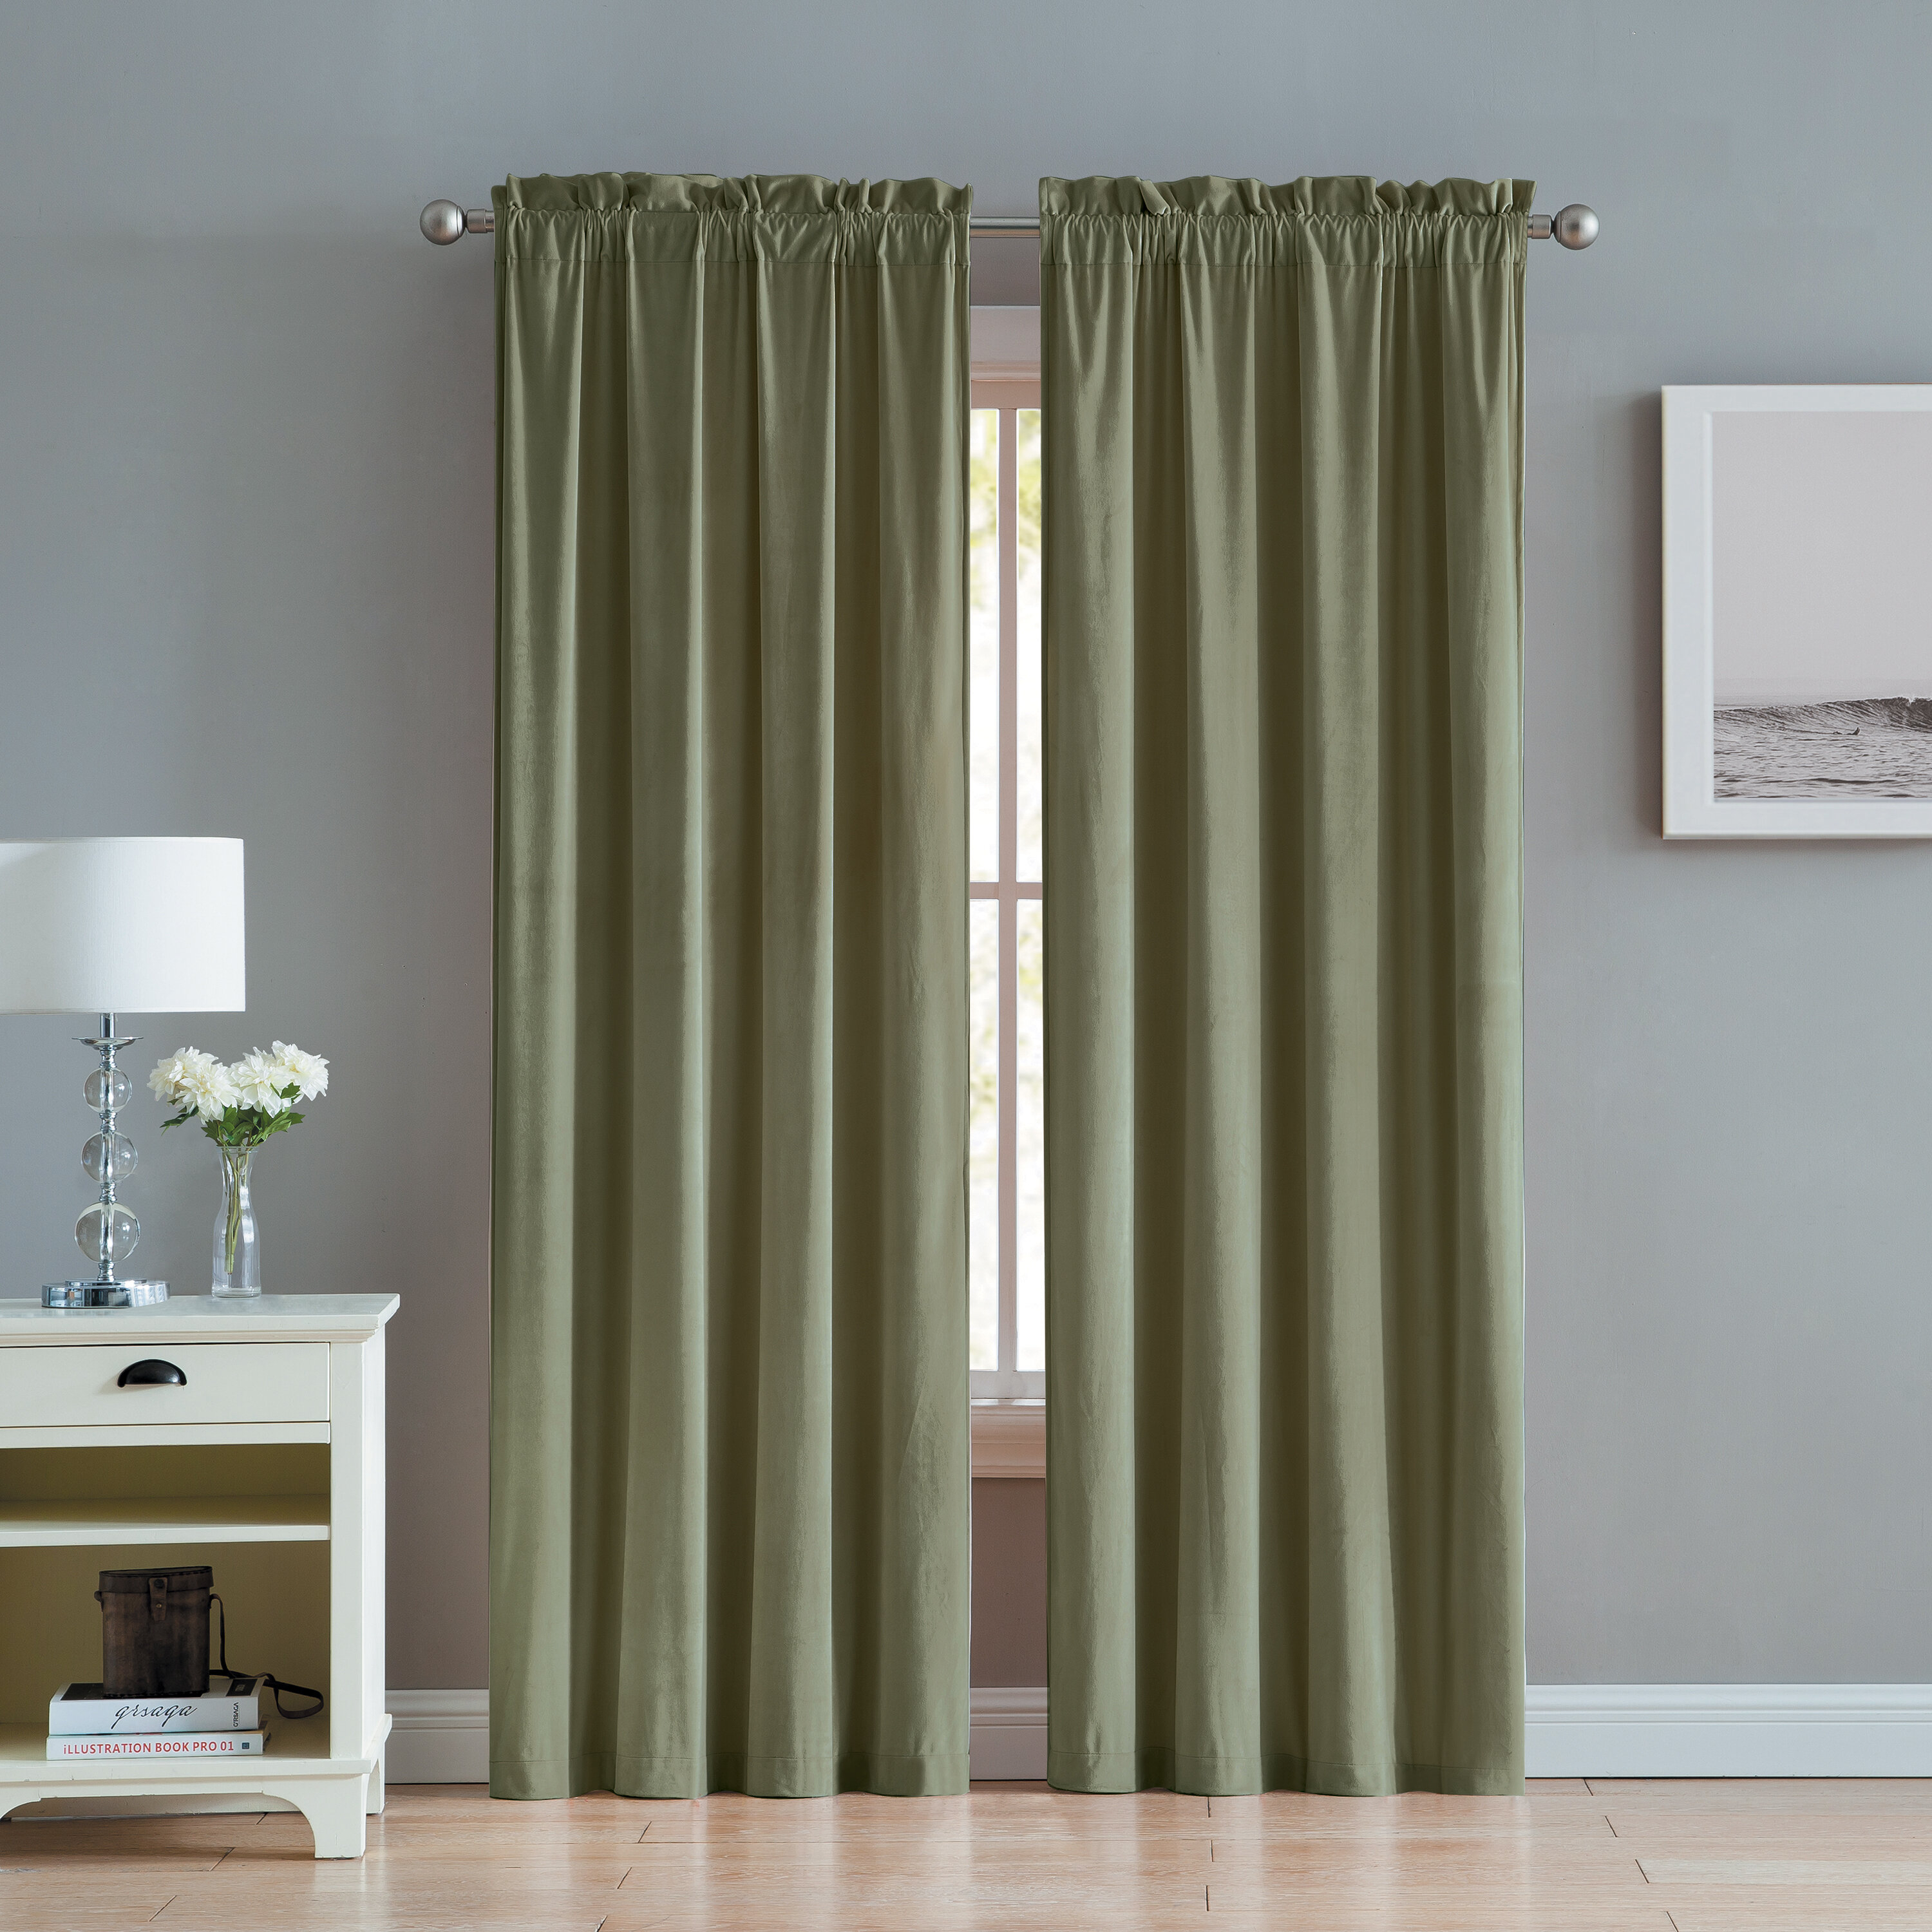 Judsonia Velvet Solid Room Darkening Rod Pocket Curtain Panels Throughout Velvet Solid Room Darkening Window Curtain Panel Sets (View 9 of 30)